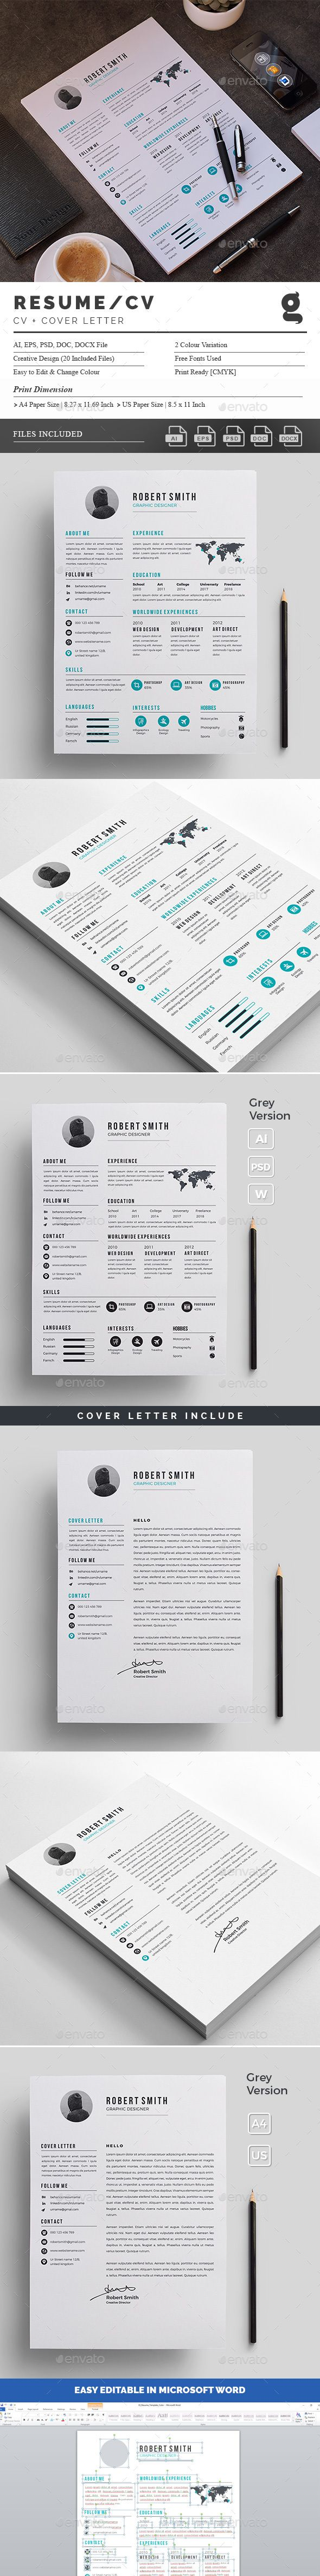 Resumes — Photoshop PSD #designer #letterhead • Download ➝ https://graphicriver.net/item/resumes/19178255?ref=pxcr